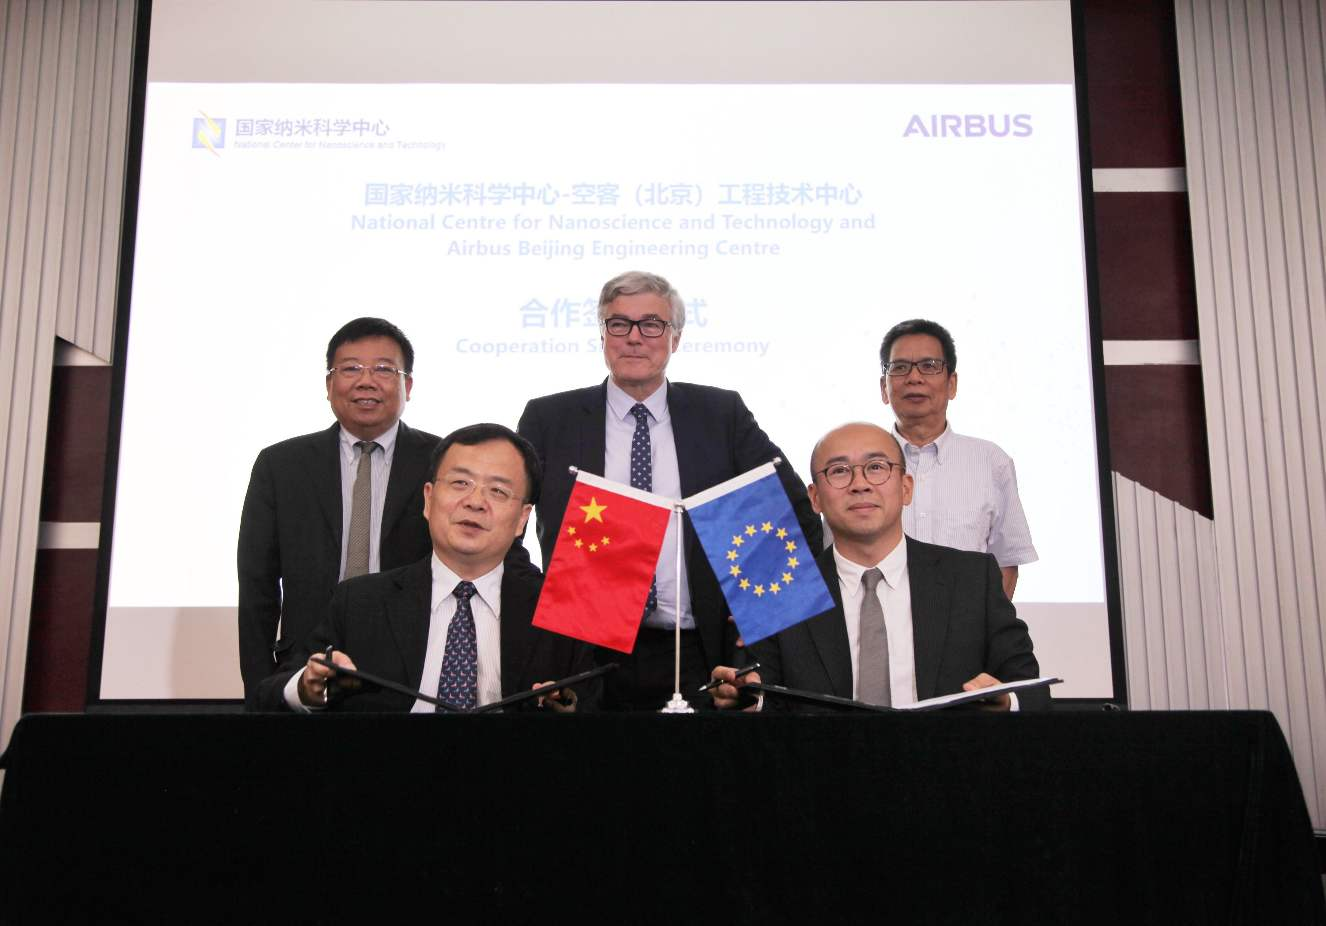 Airbus extends technology research with Chinese partners